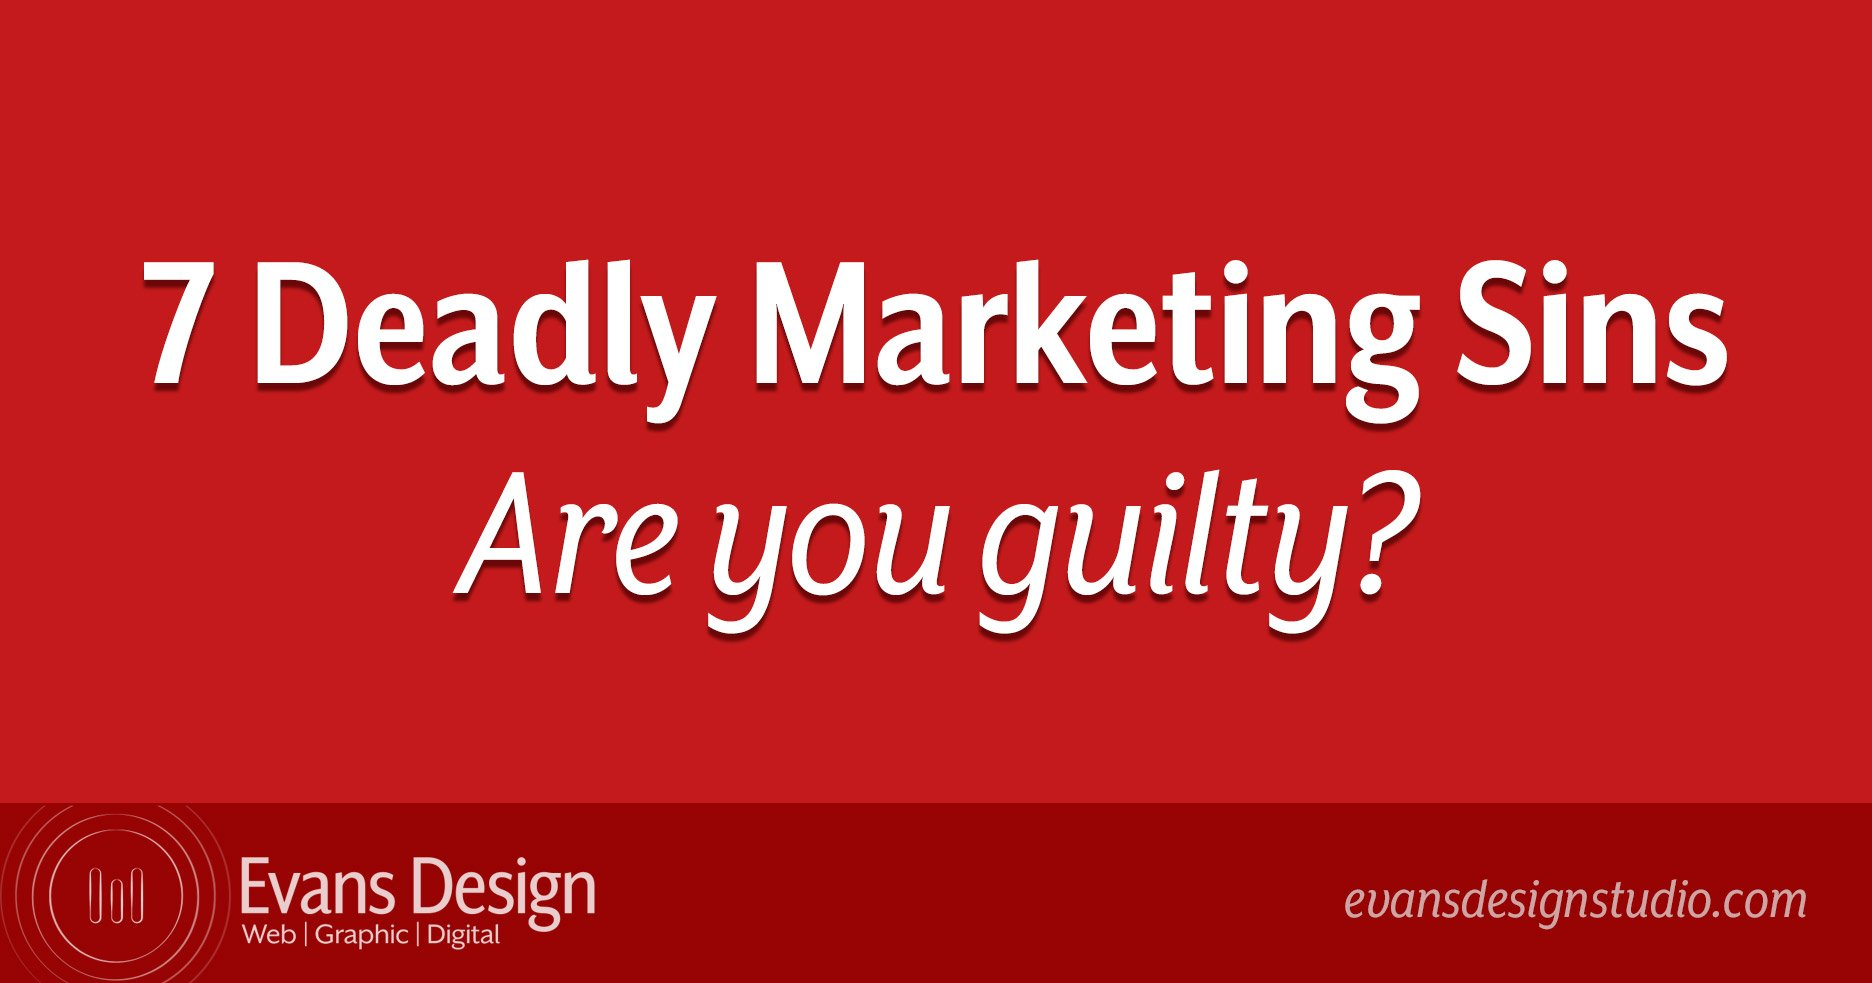 7 Deadly Marketing Sins - Cumming SEO Company